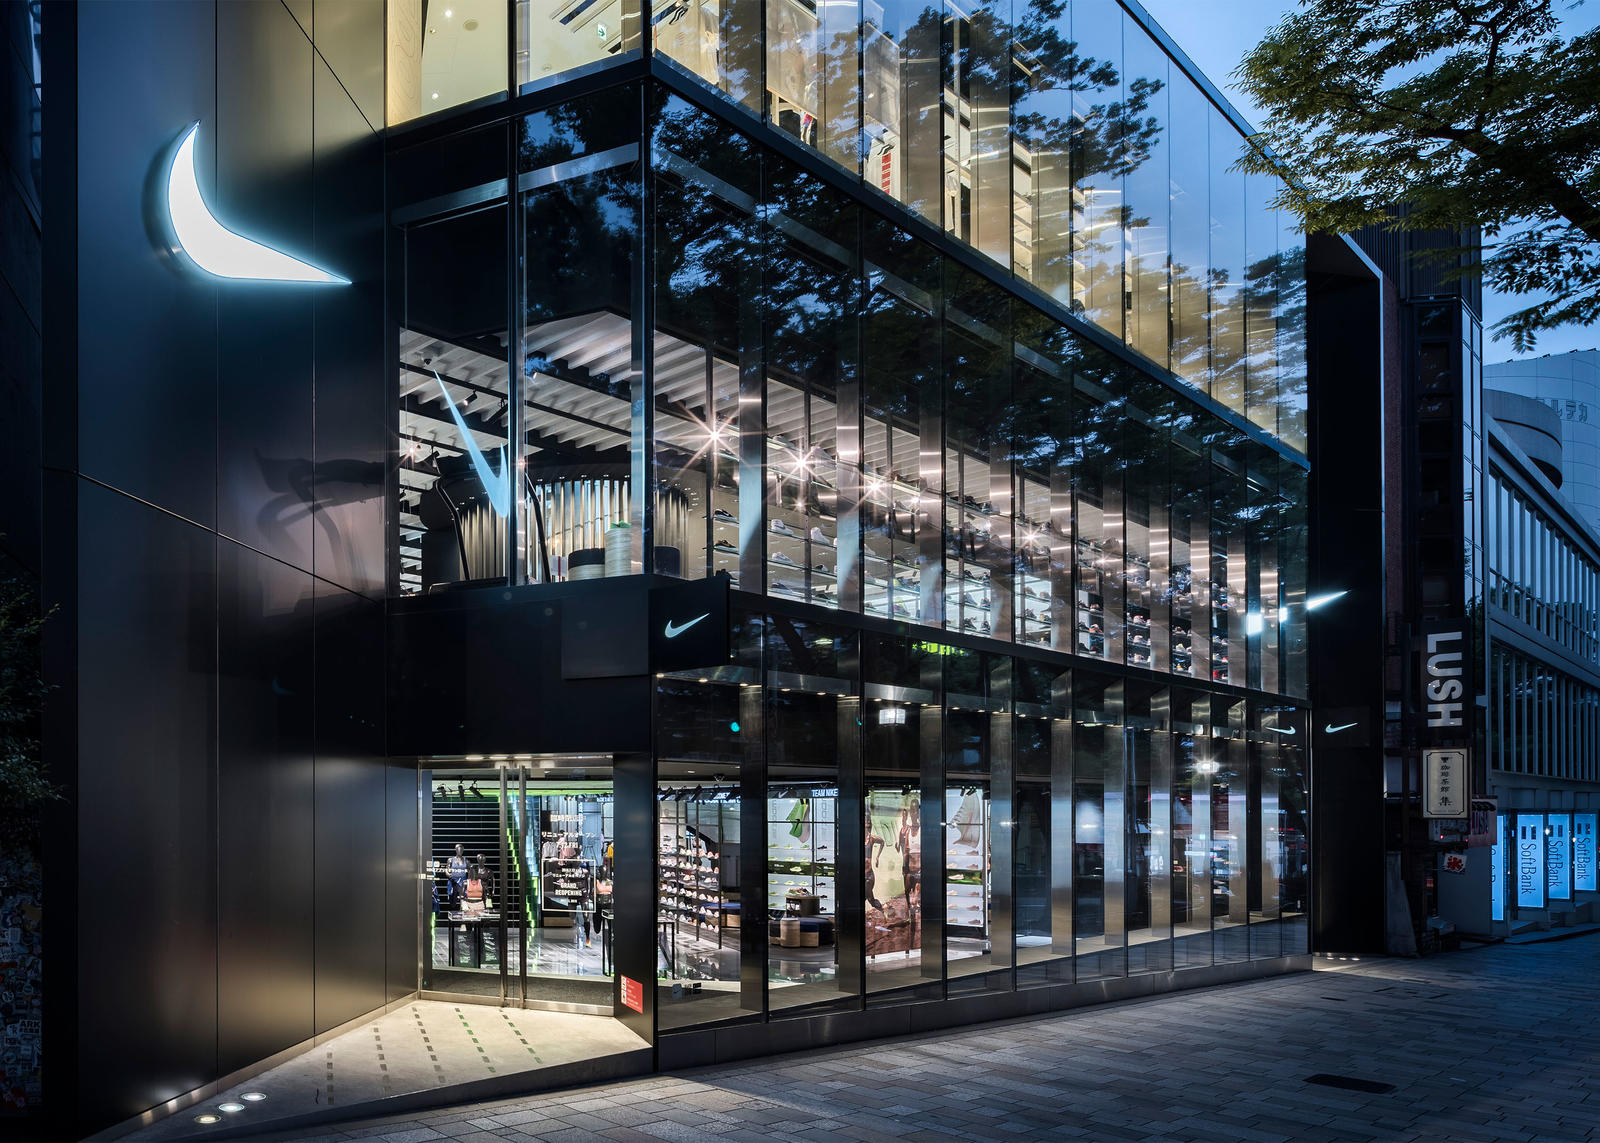 Nike Events: July 2019 – See the Newly Remodeled Nike Harajuku Store 5